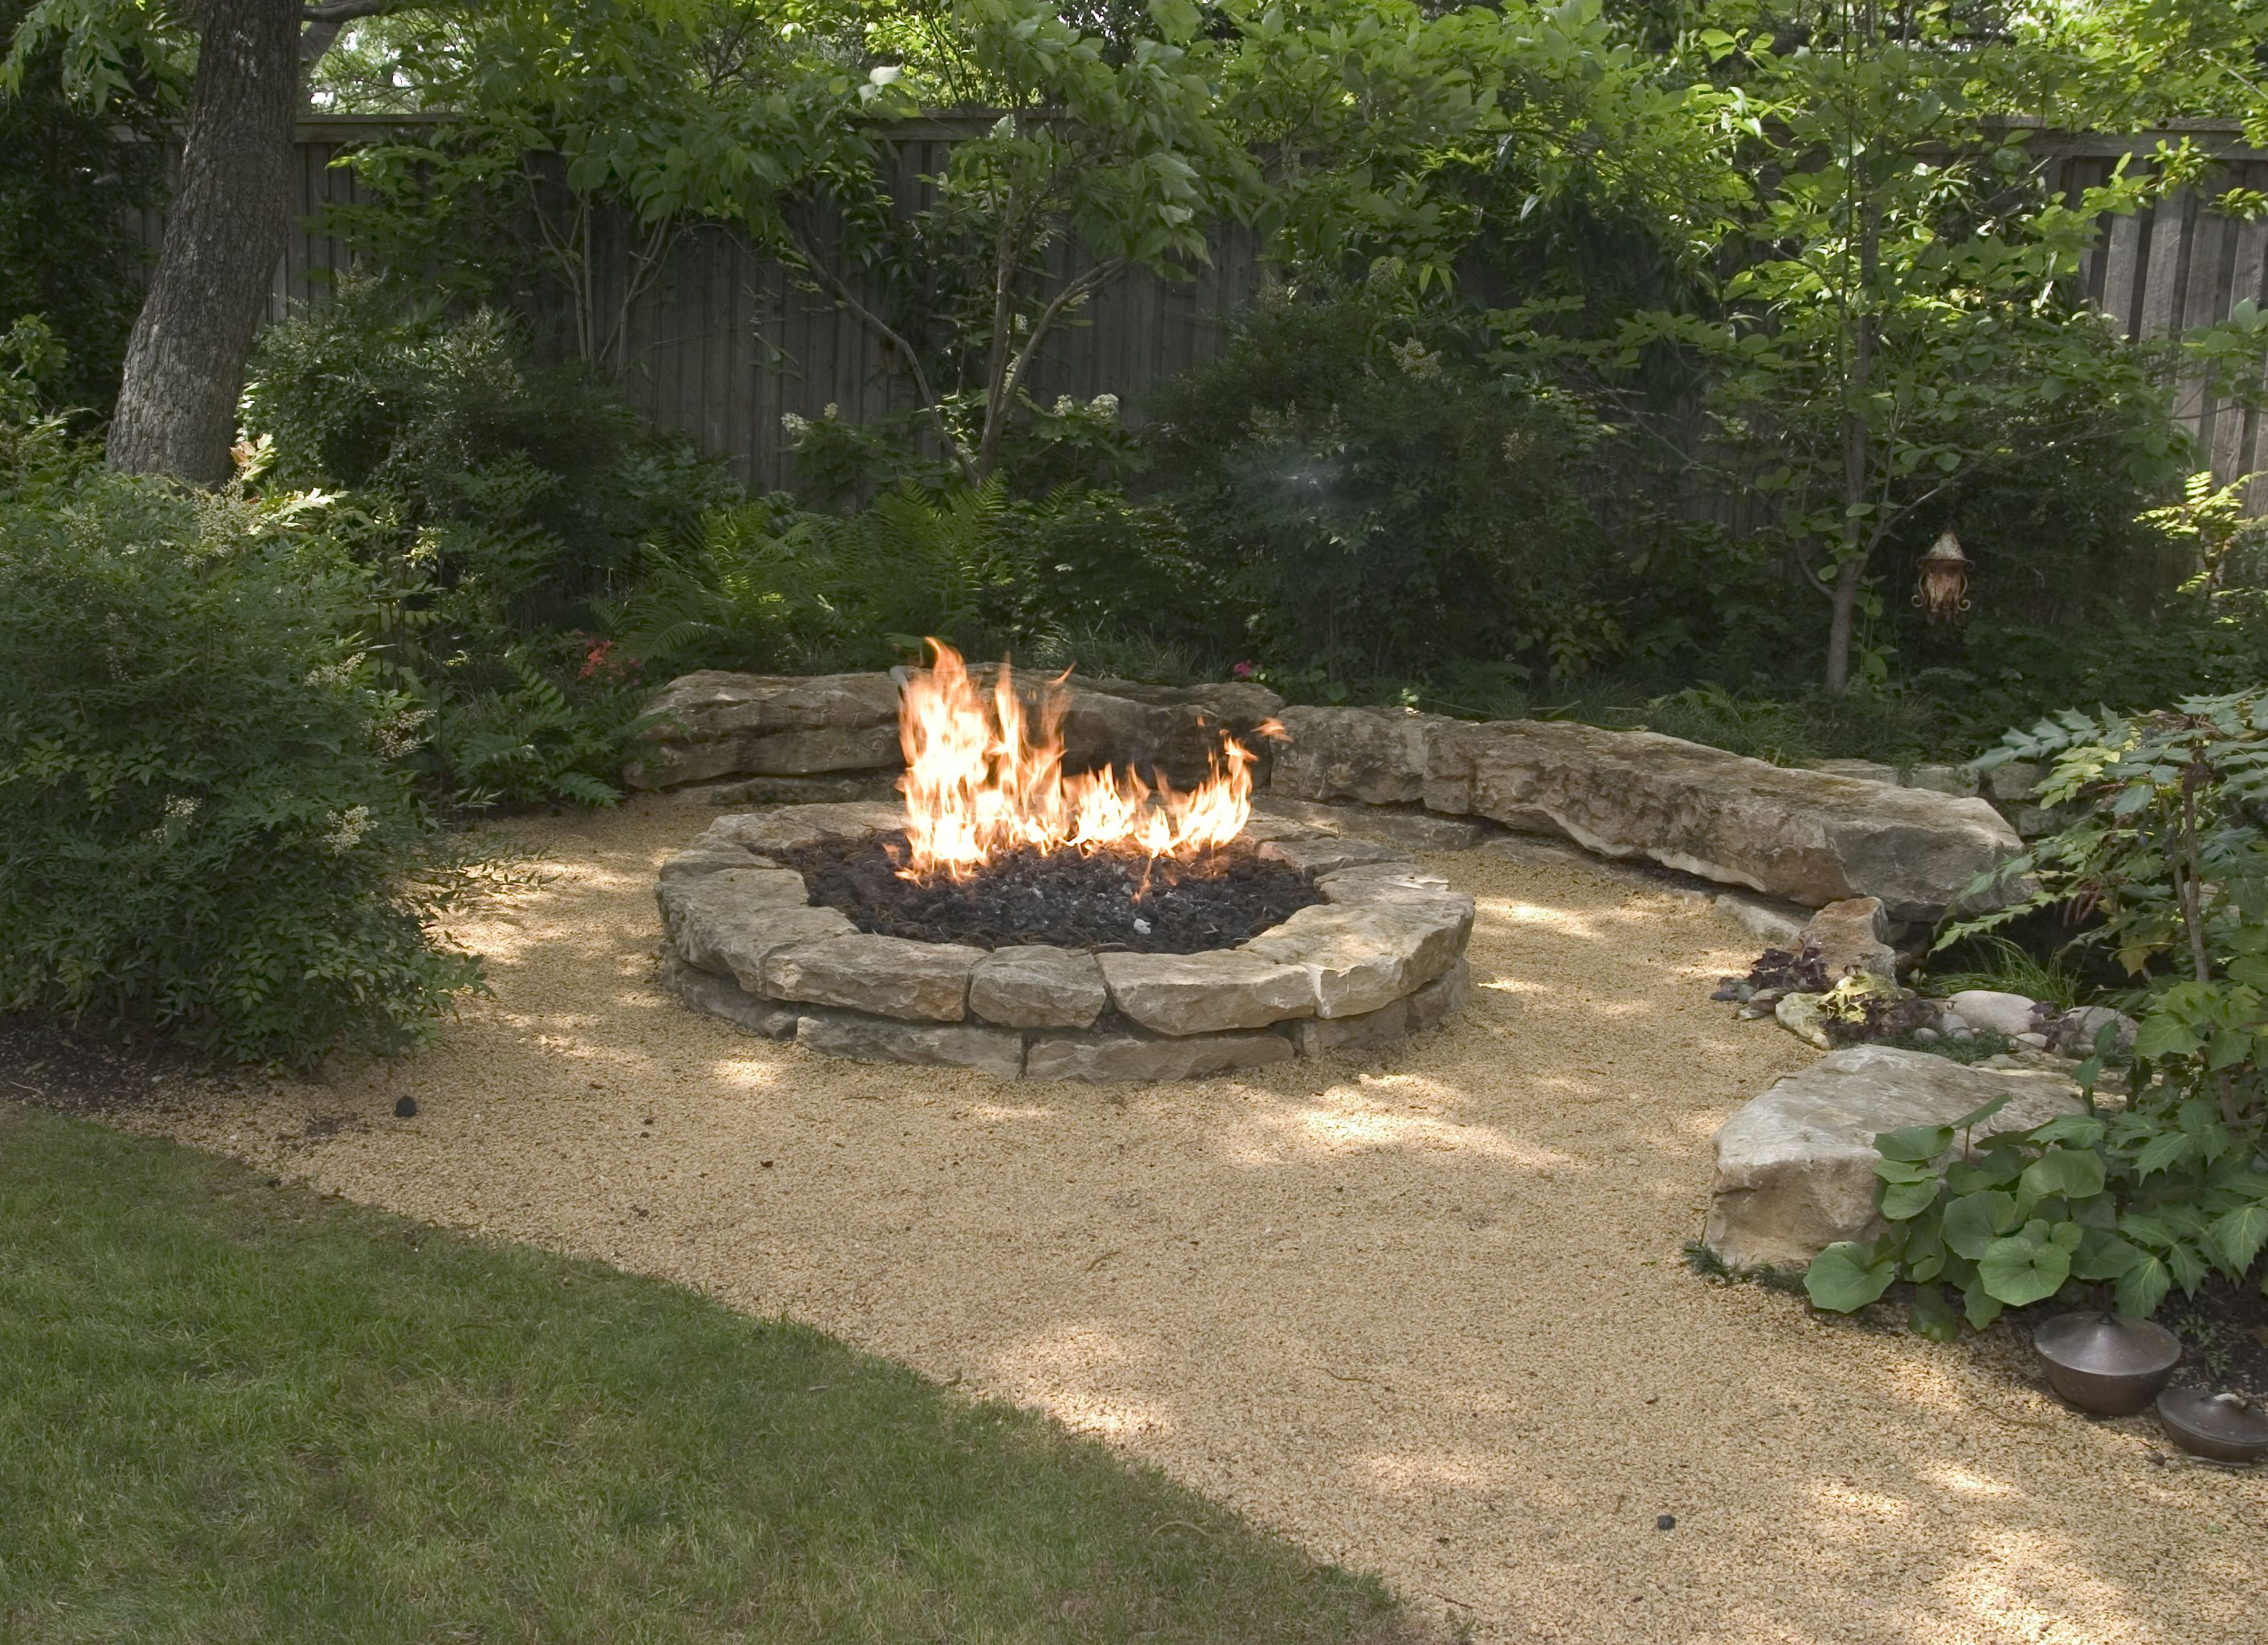 Backyard Landscaping Ideas With Fire Pit why patio fire pits are nice landscaping addition Backyard Backyard Landscaping Ideas Attractive Fire Pit